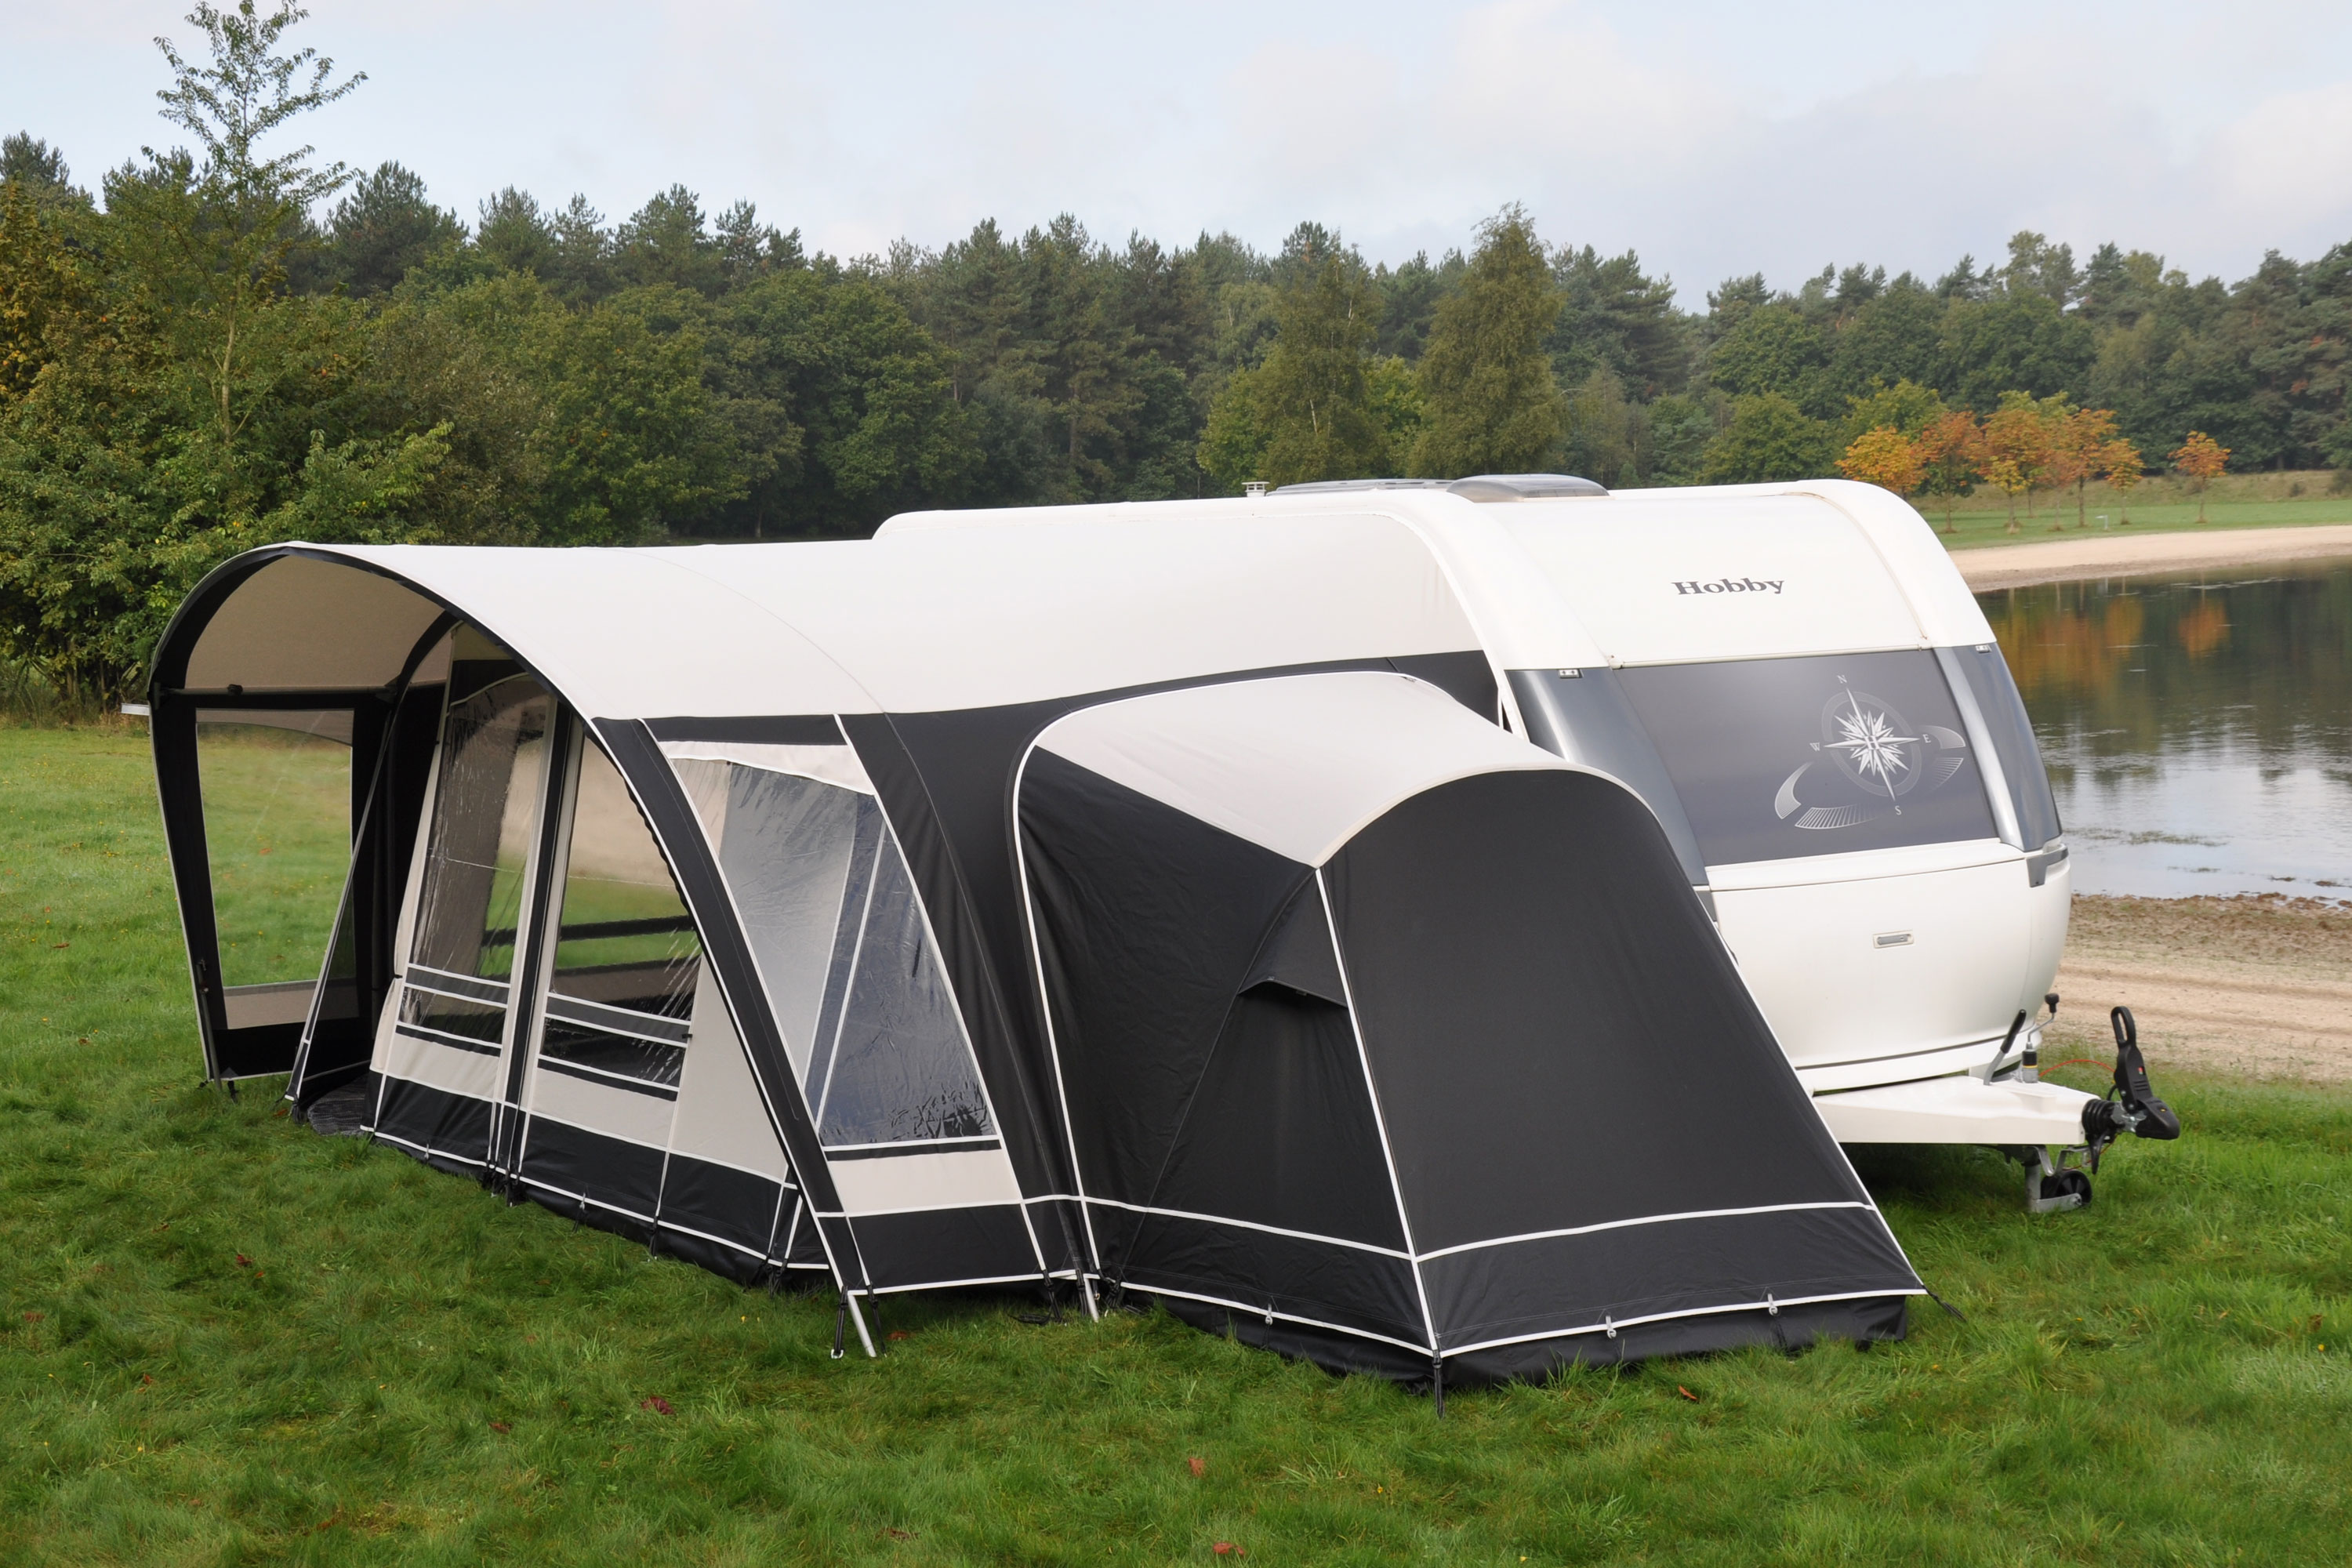 gear outdoor specifications air darche tent walls no product dimensions volution awning at